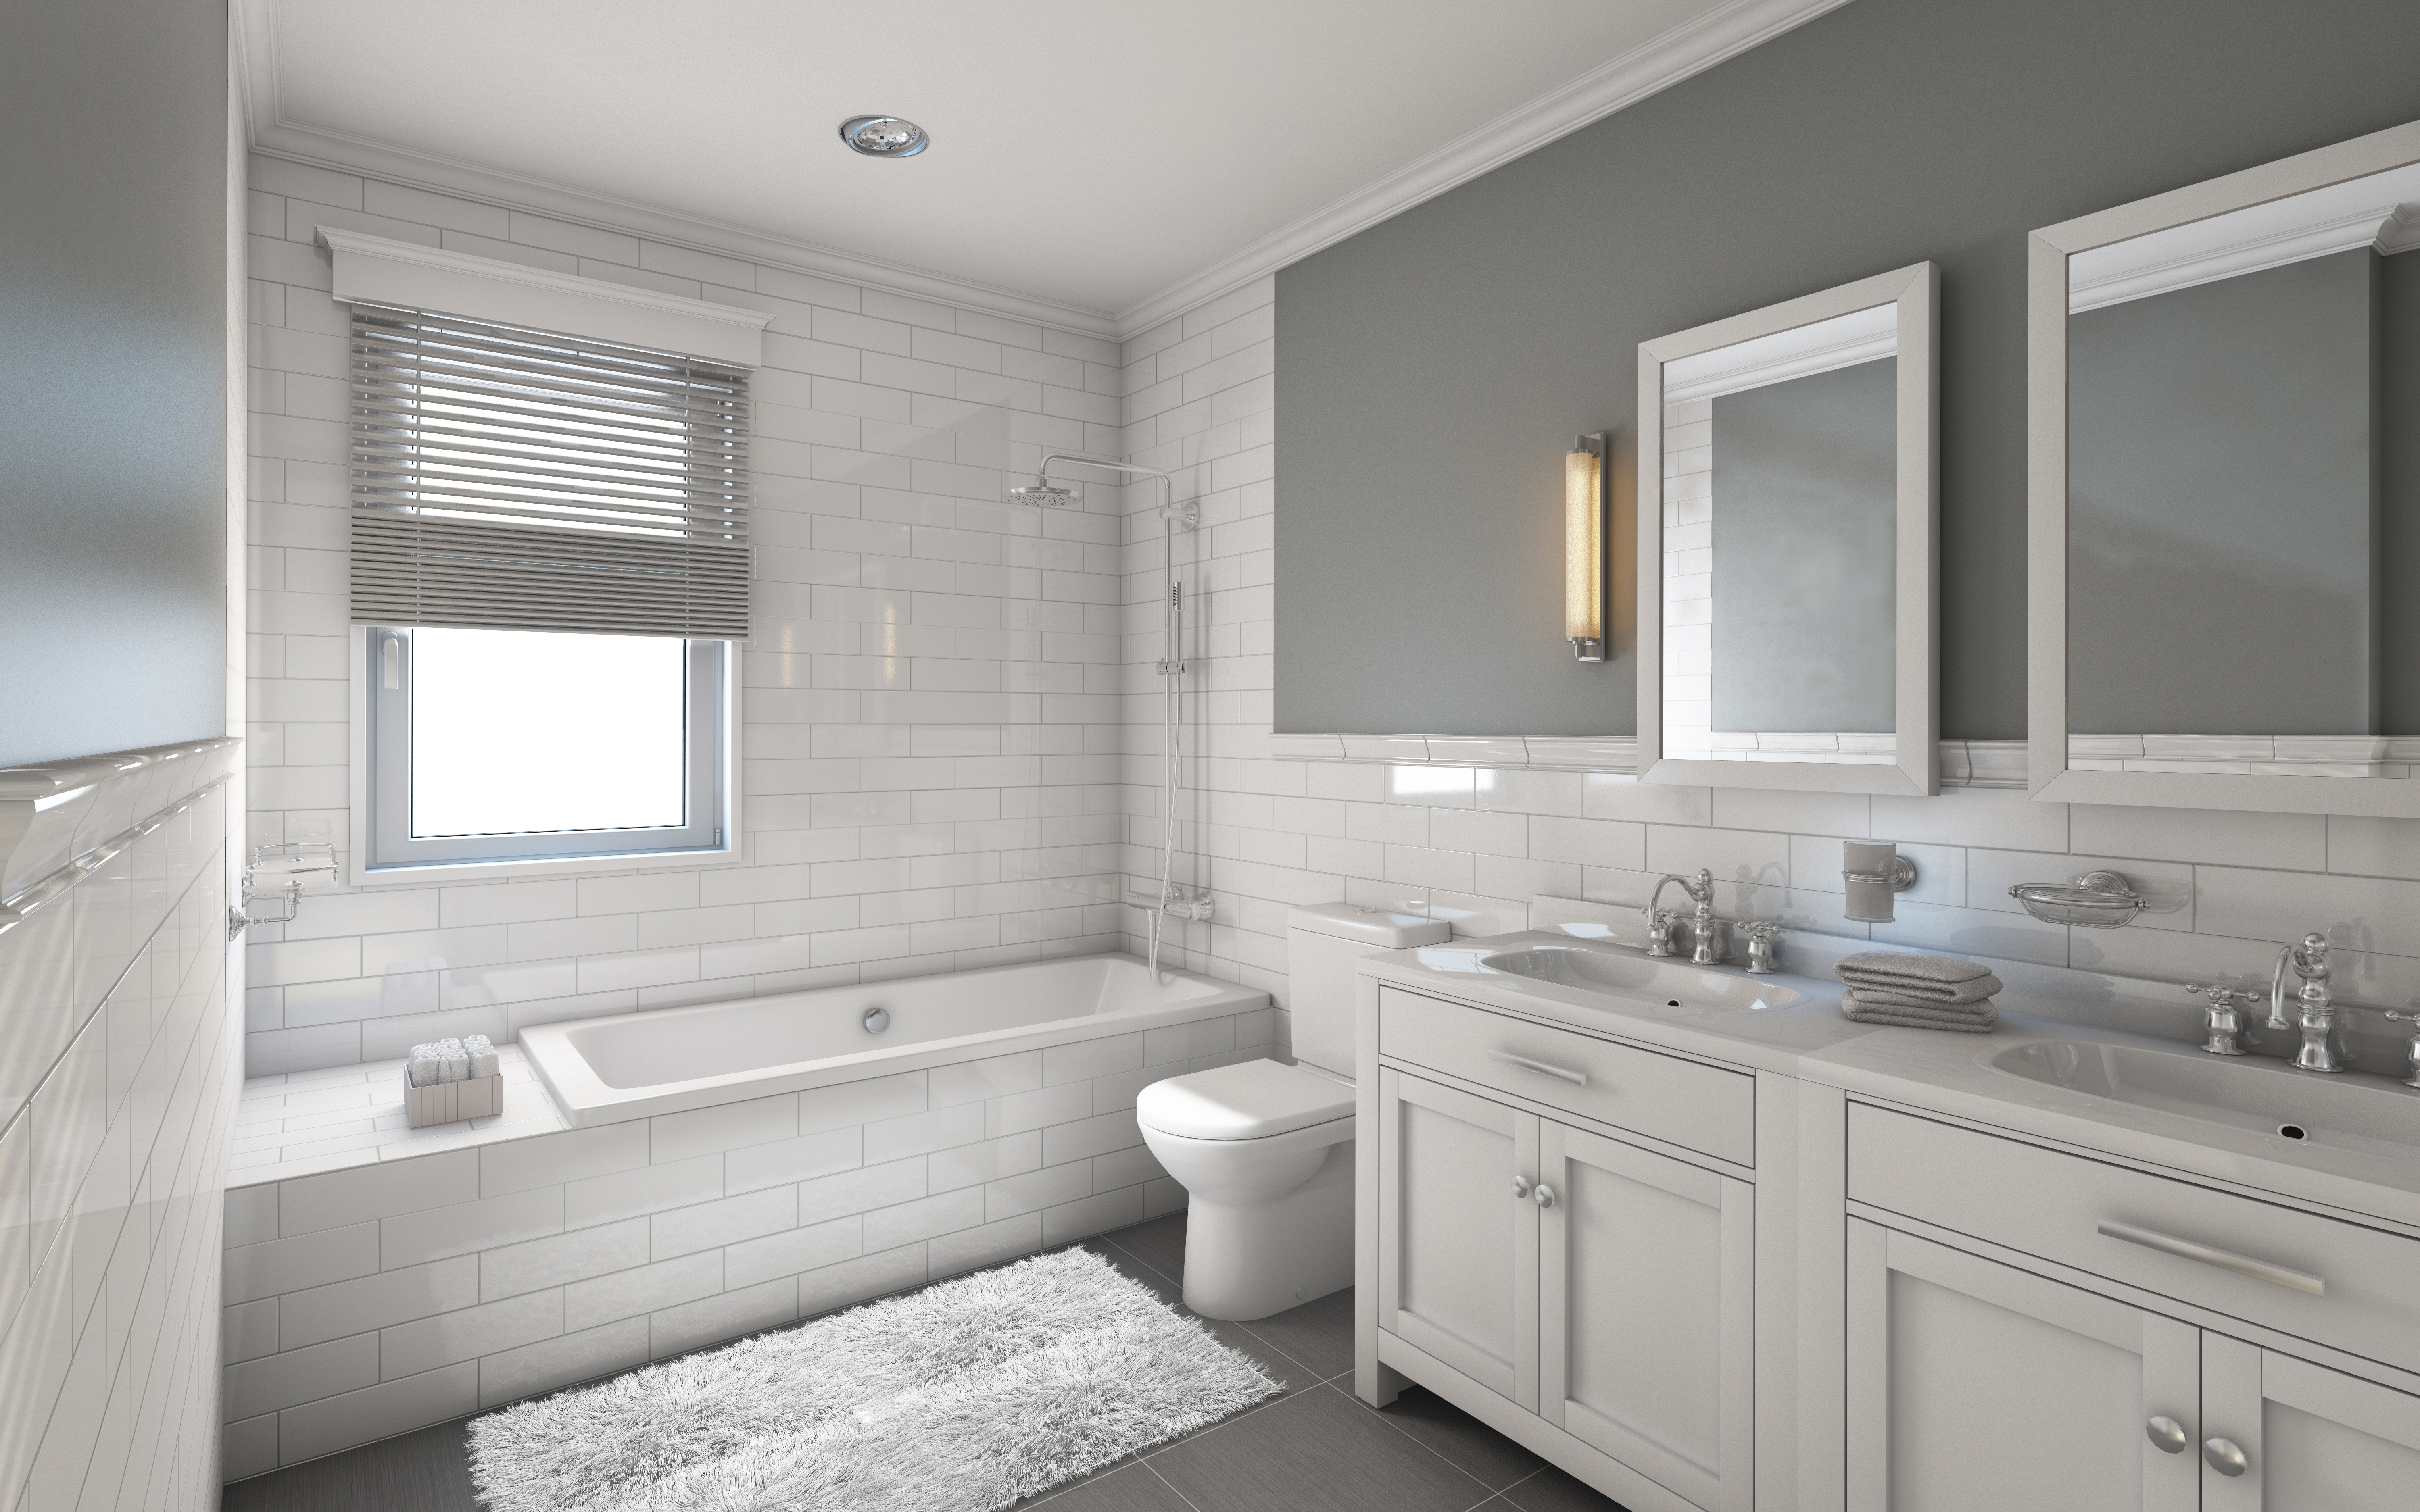 Some tips to decorate your bathroom